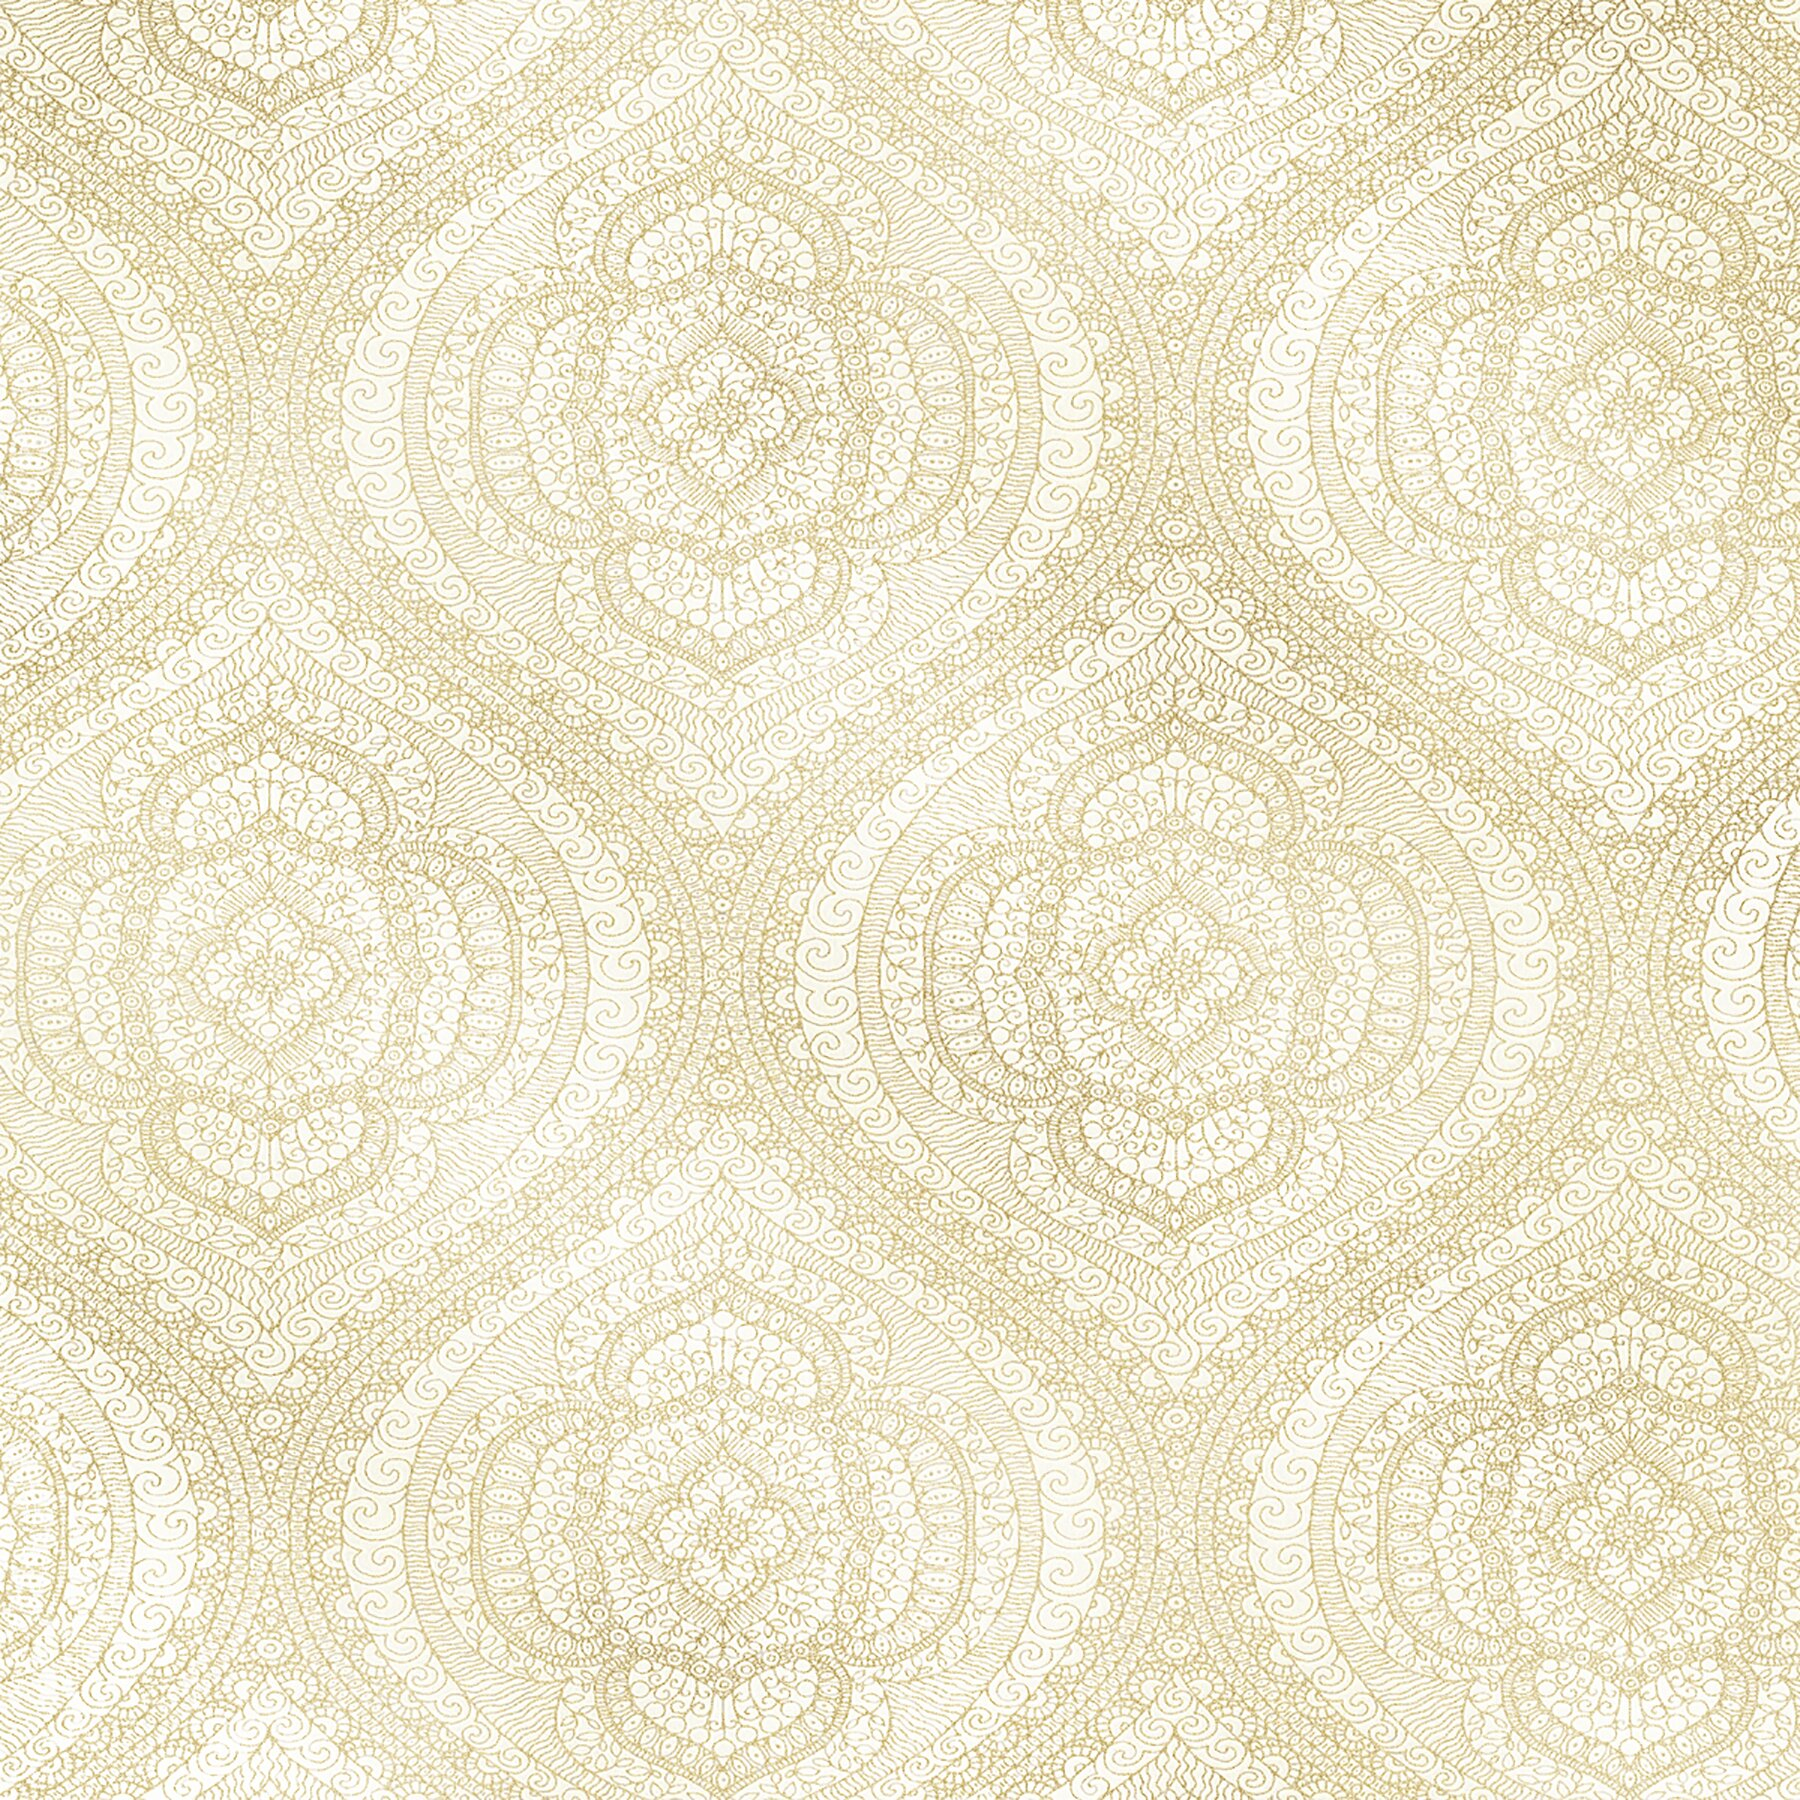 Brewster home fashions alhambra zaida 33 39 x 20 5 damask for 3d embossed wallpaper